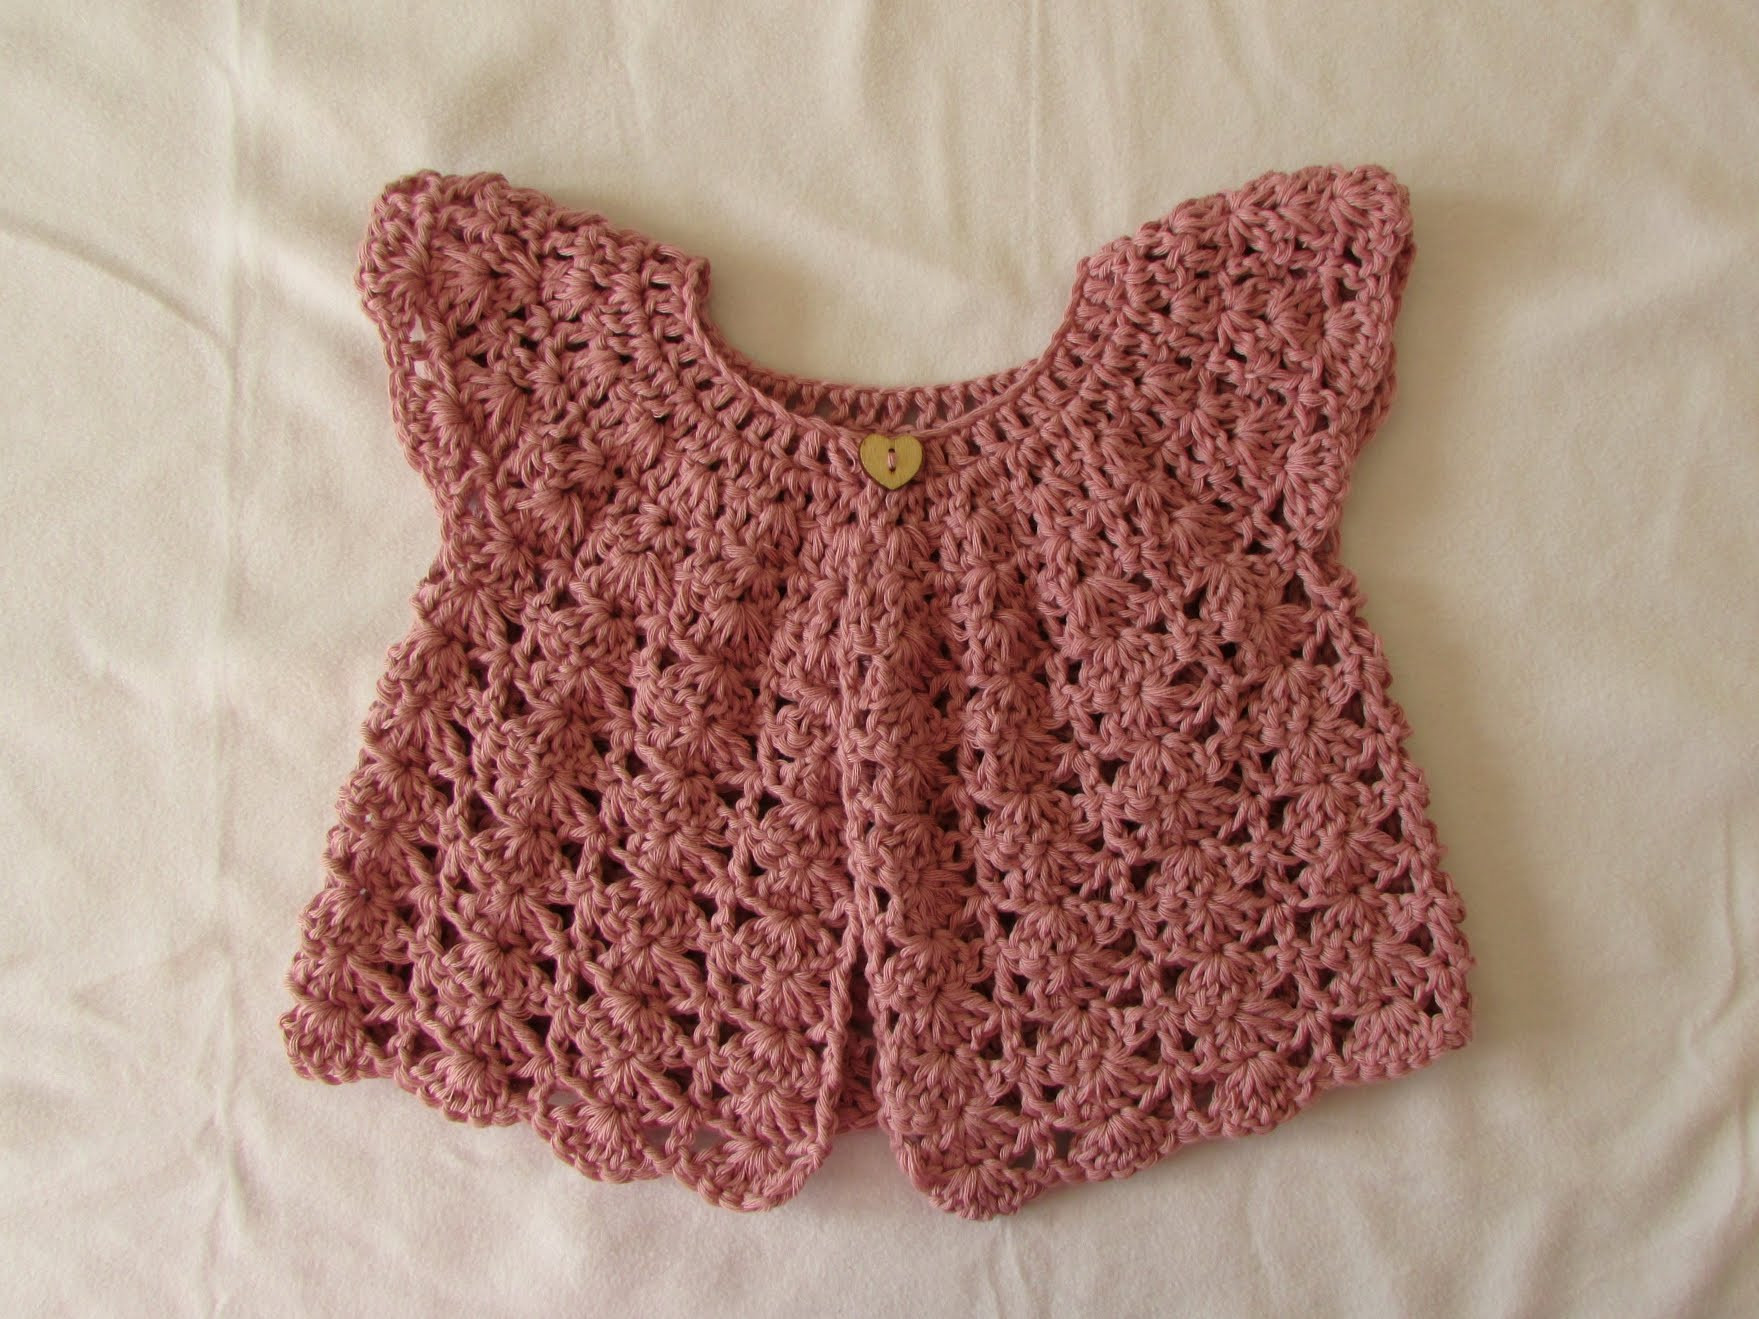 Free Crochet Patterns for Babies Cardigans Elegant Baby Crochet Sweater Of Superb 45 Models Free Crochet Patterns for Babies Cardigans